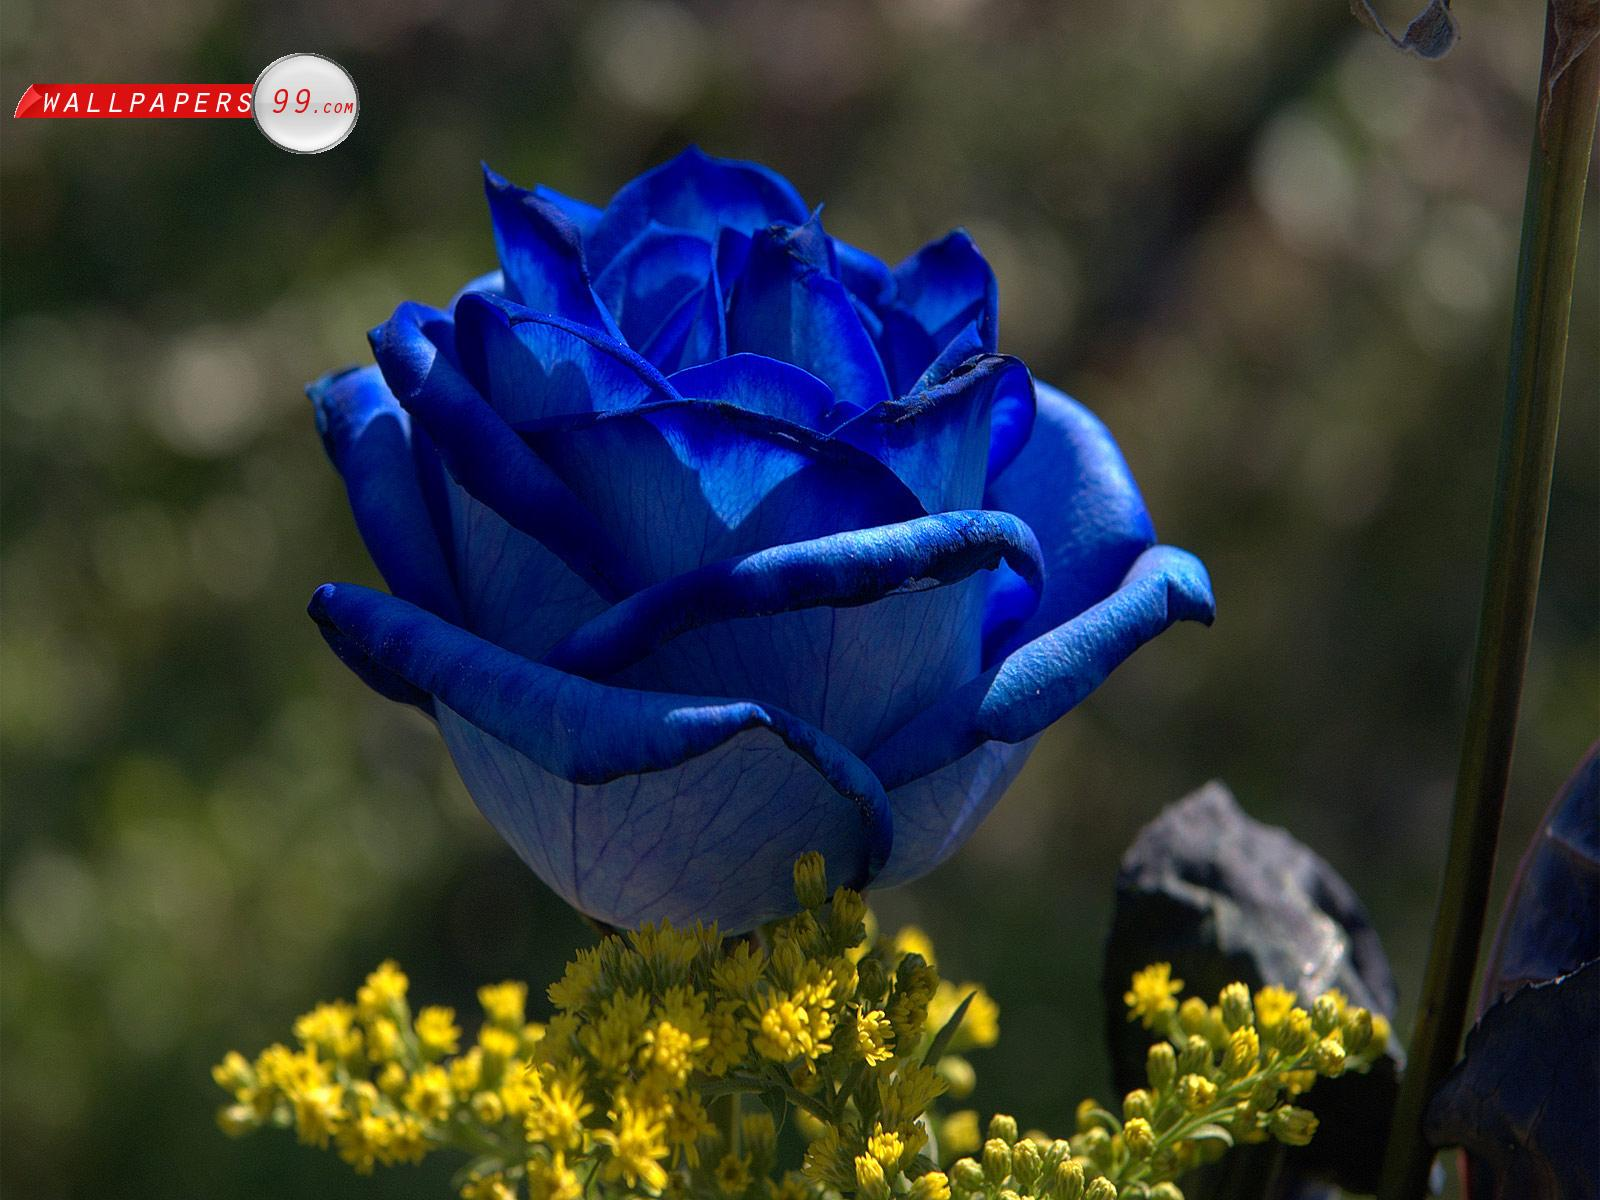 hd wallpaper of blue rose | hd wallpapers